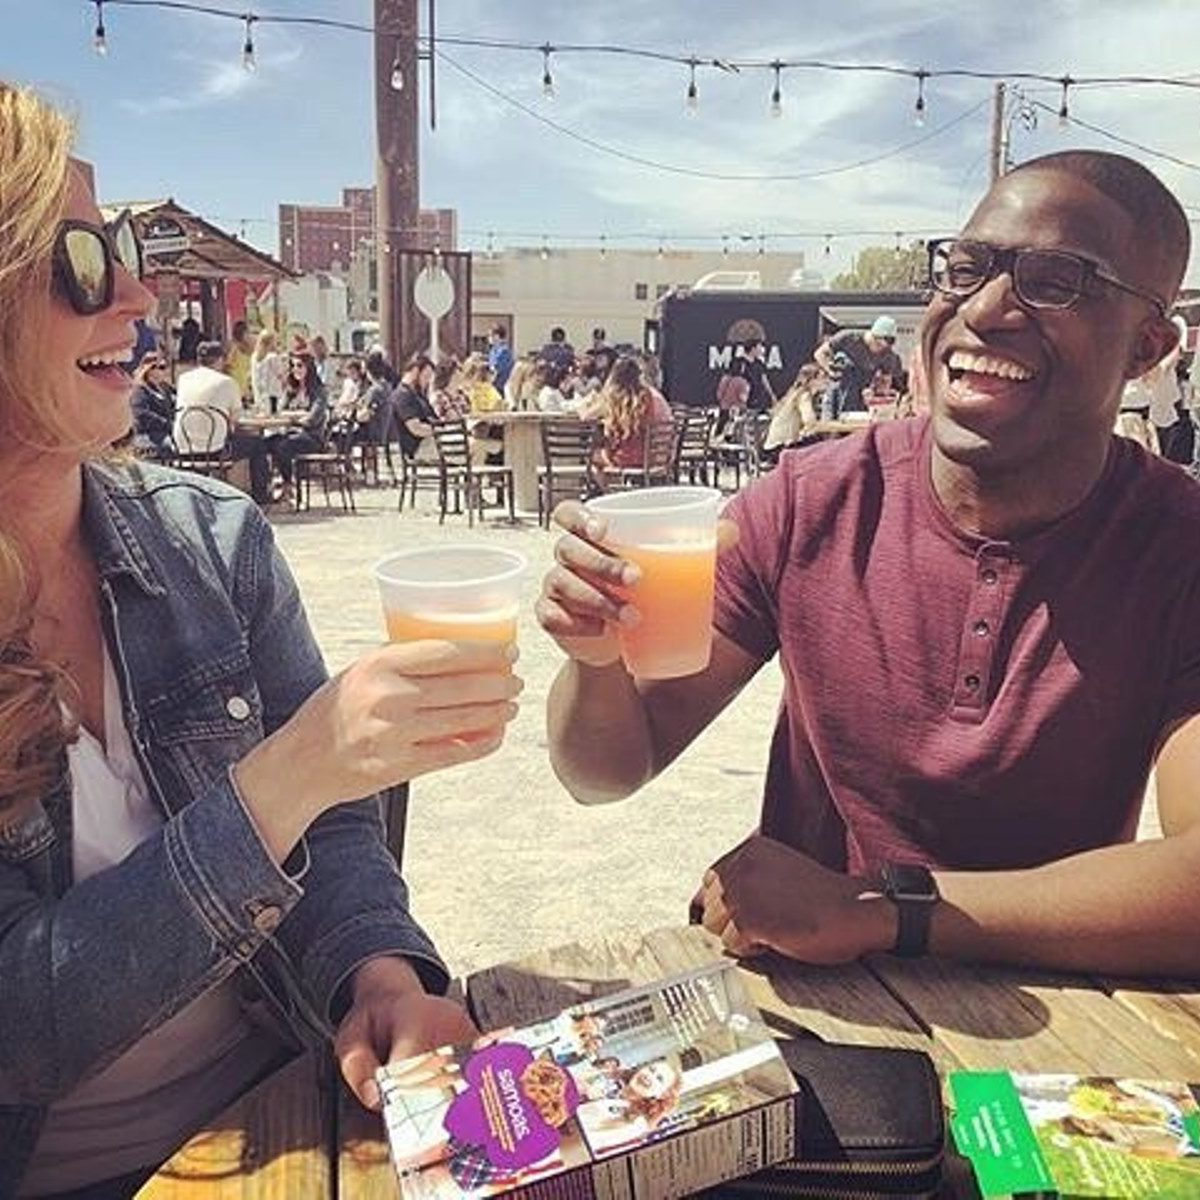 Woman and man enjoying beers together at Bleu Garten